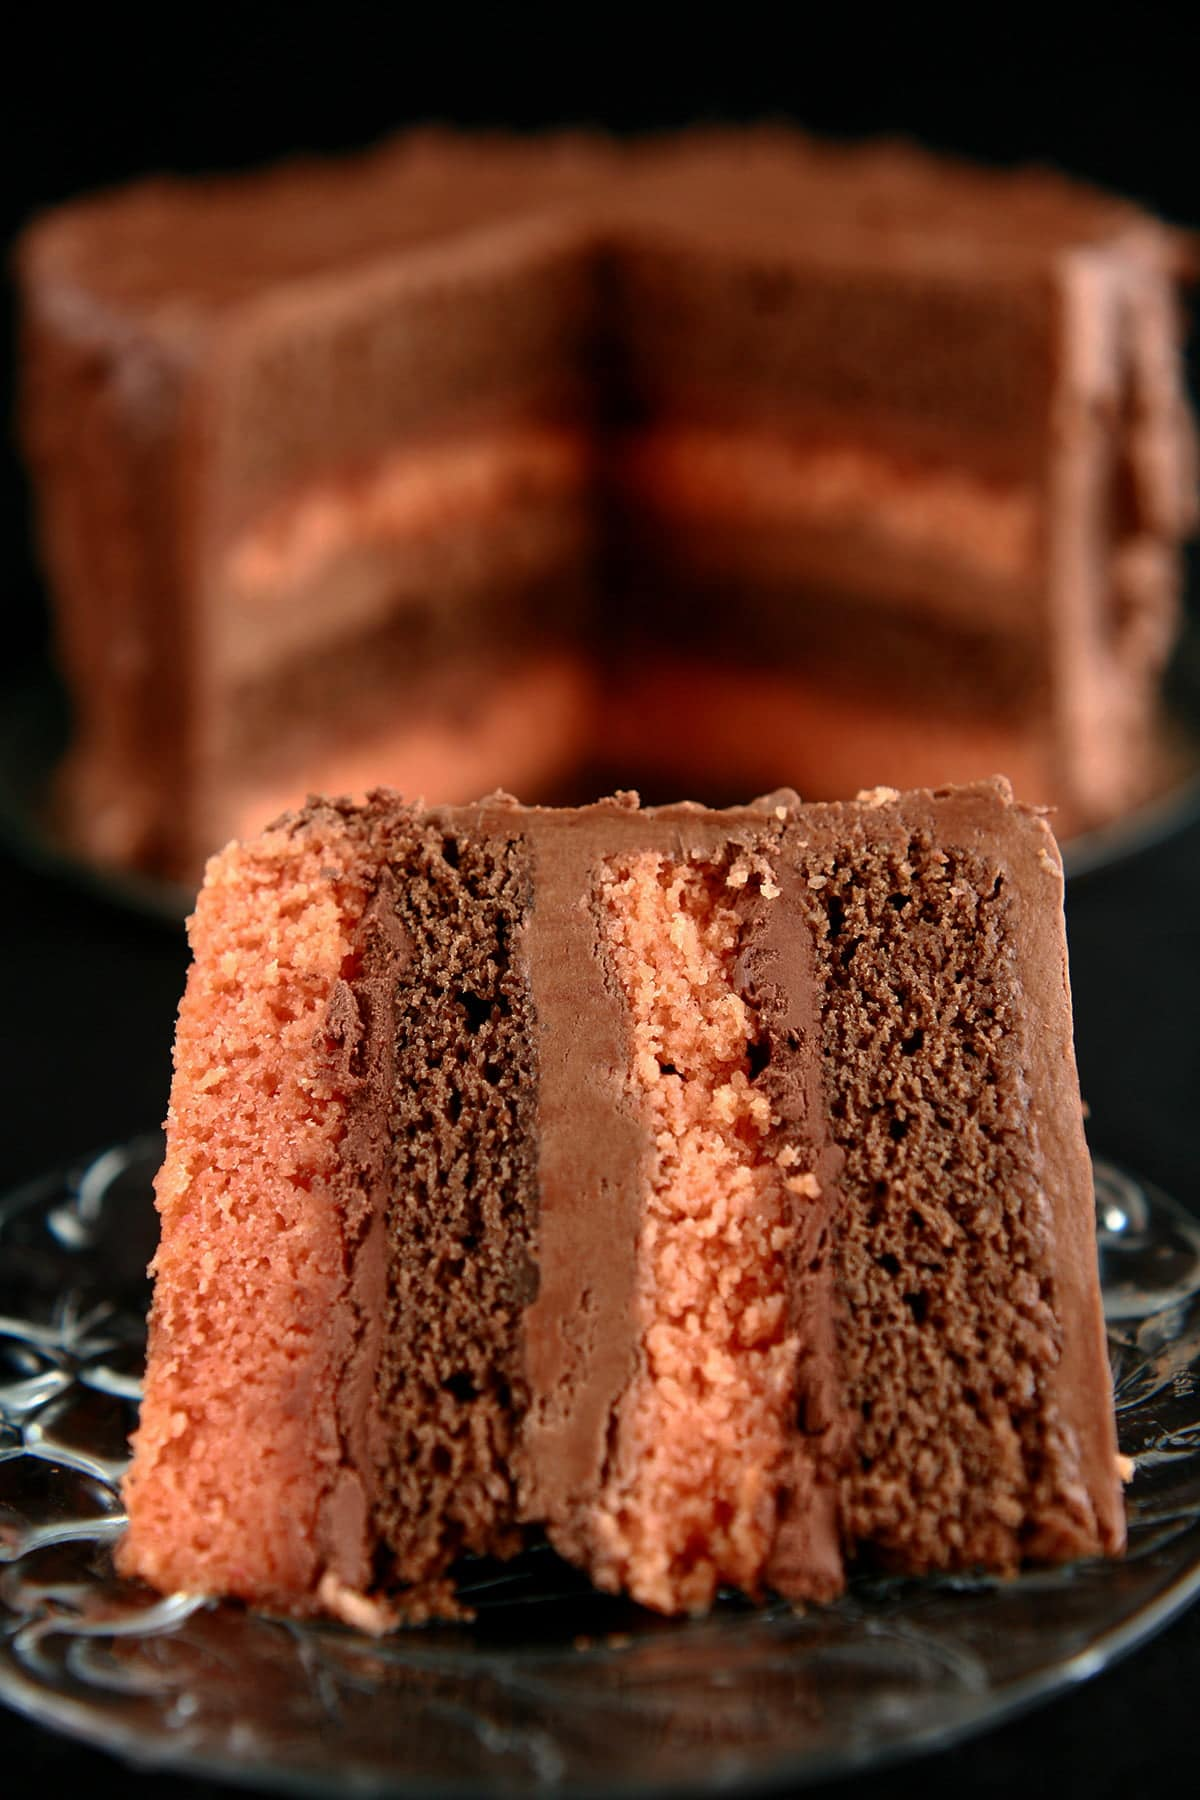 A large slice of B-52 Cake is shown in front of a round, whole cake with a section cut out. The cake shows layers of mocha and orange cakes, separated by layers of blood orange ganache and Irish Cream buttercream.